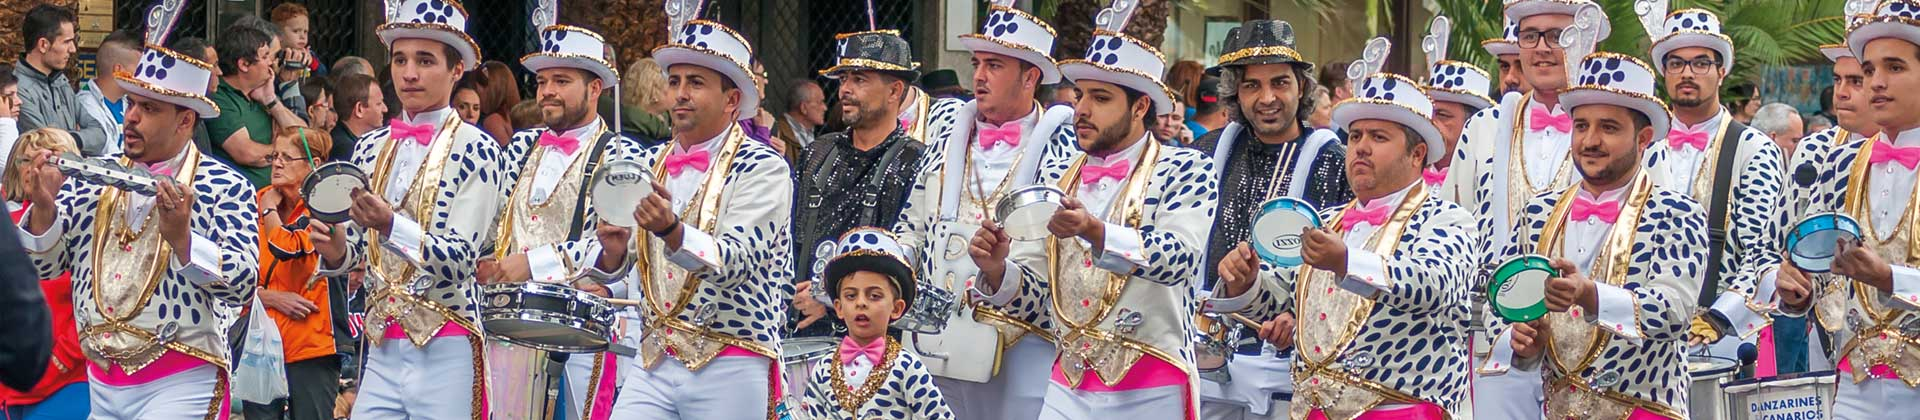 https://www.goodmorningtenerife.com/wp-content/uploads/2014/08/02_slide_carnival_GM_Tenerife.jpg